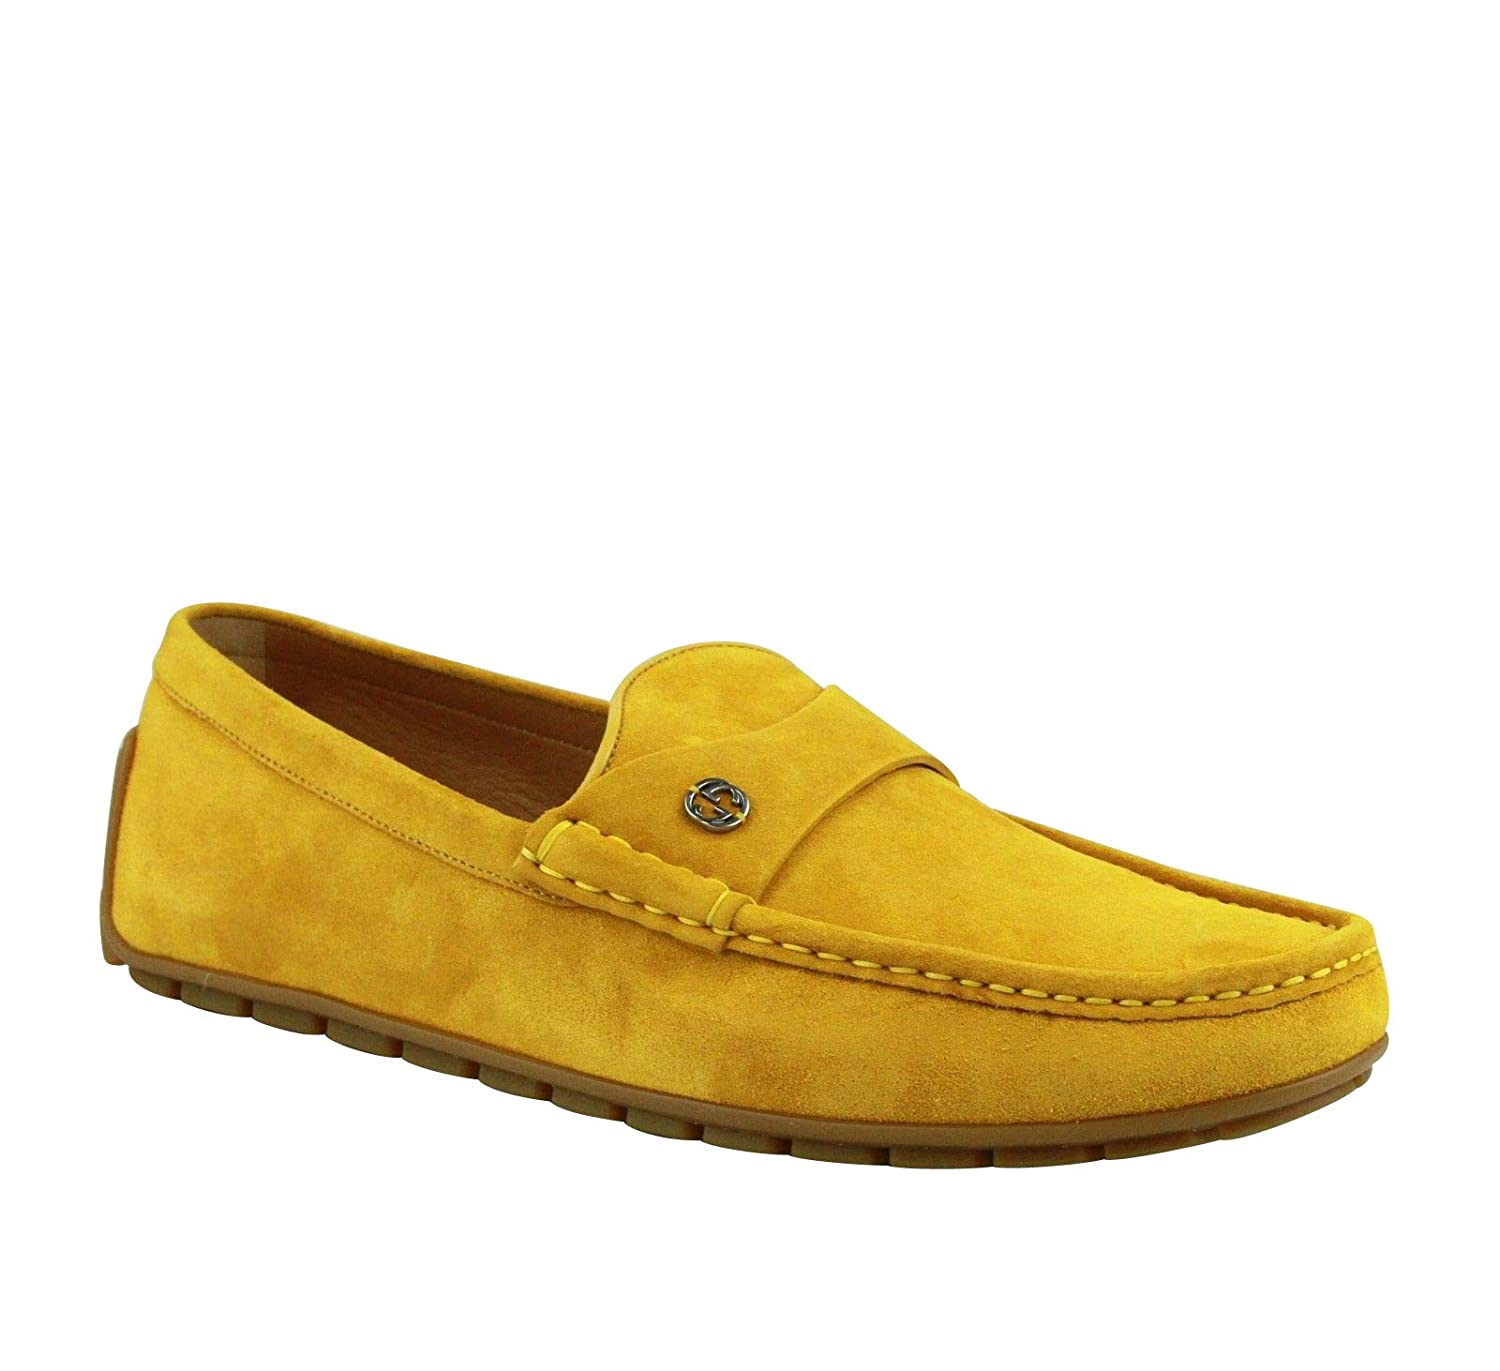 0ca92186408a Amazon.com  Gucci Silver Interlocking G Yellow Suede Leather Loafer Shoes  386587 7008 (9.5 G   10 US)  Shoes